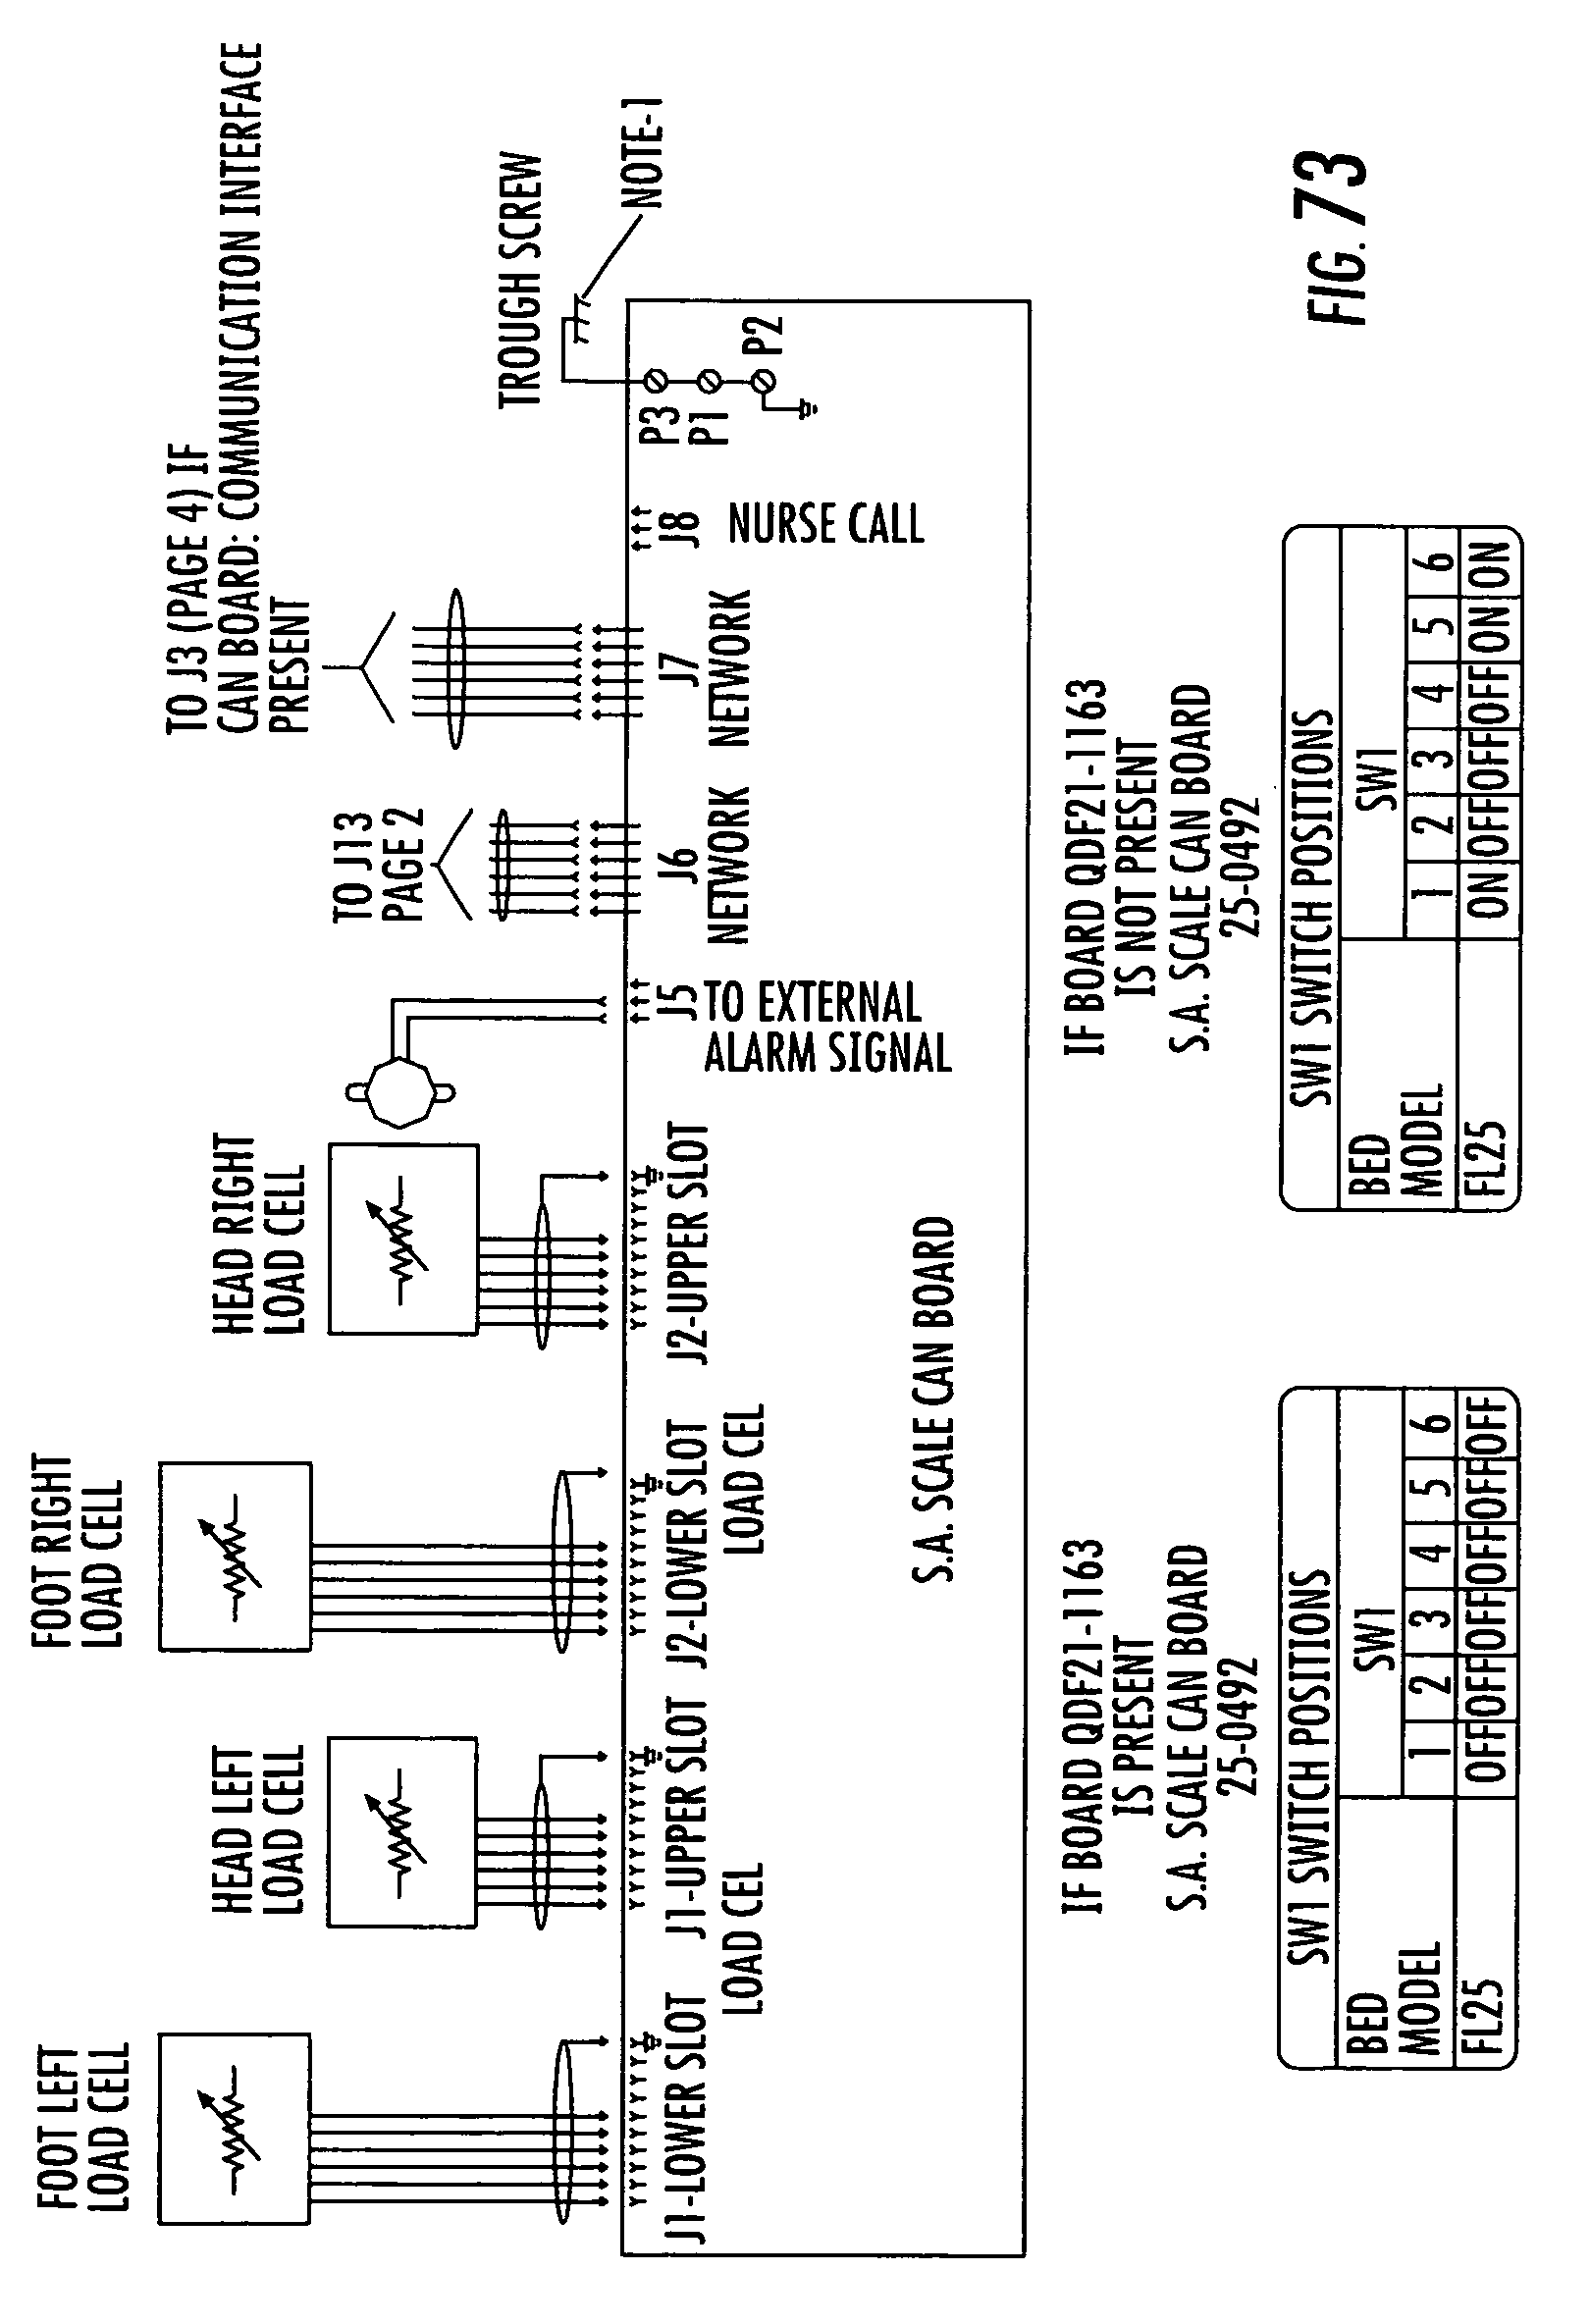 Patent Us 7962981 B2 Hospital Bed Remote Control Wiring Diagrams